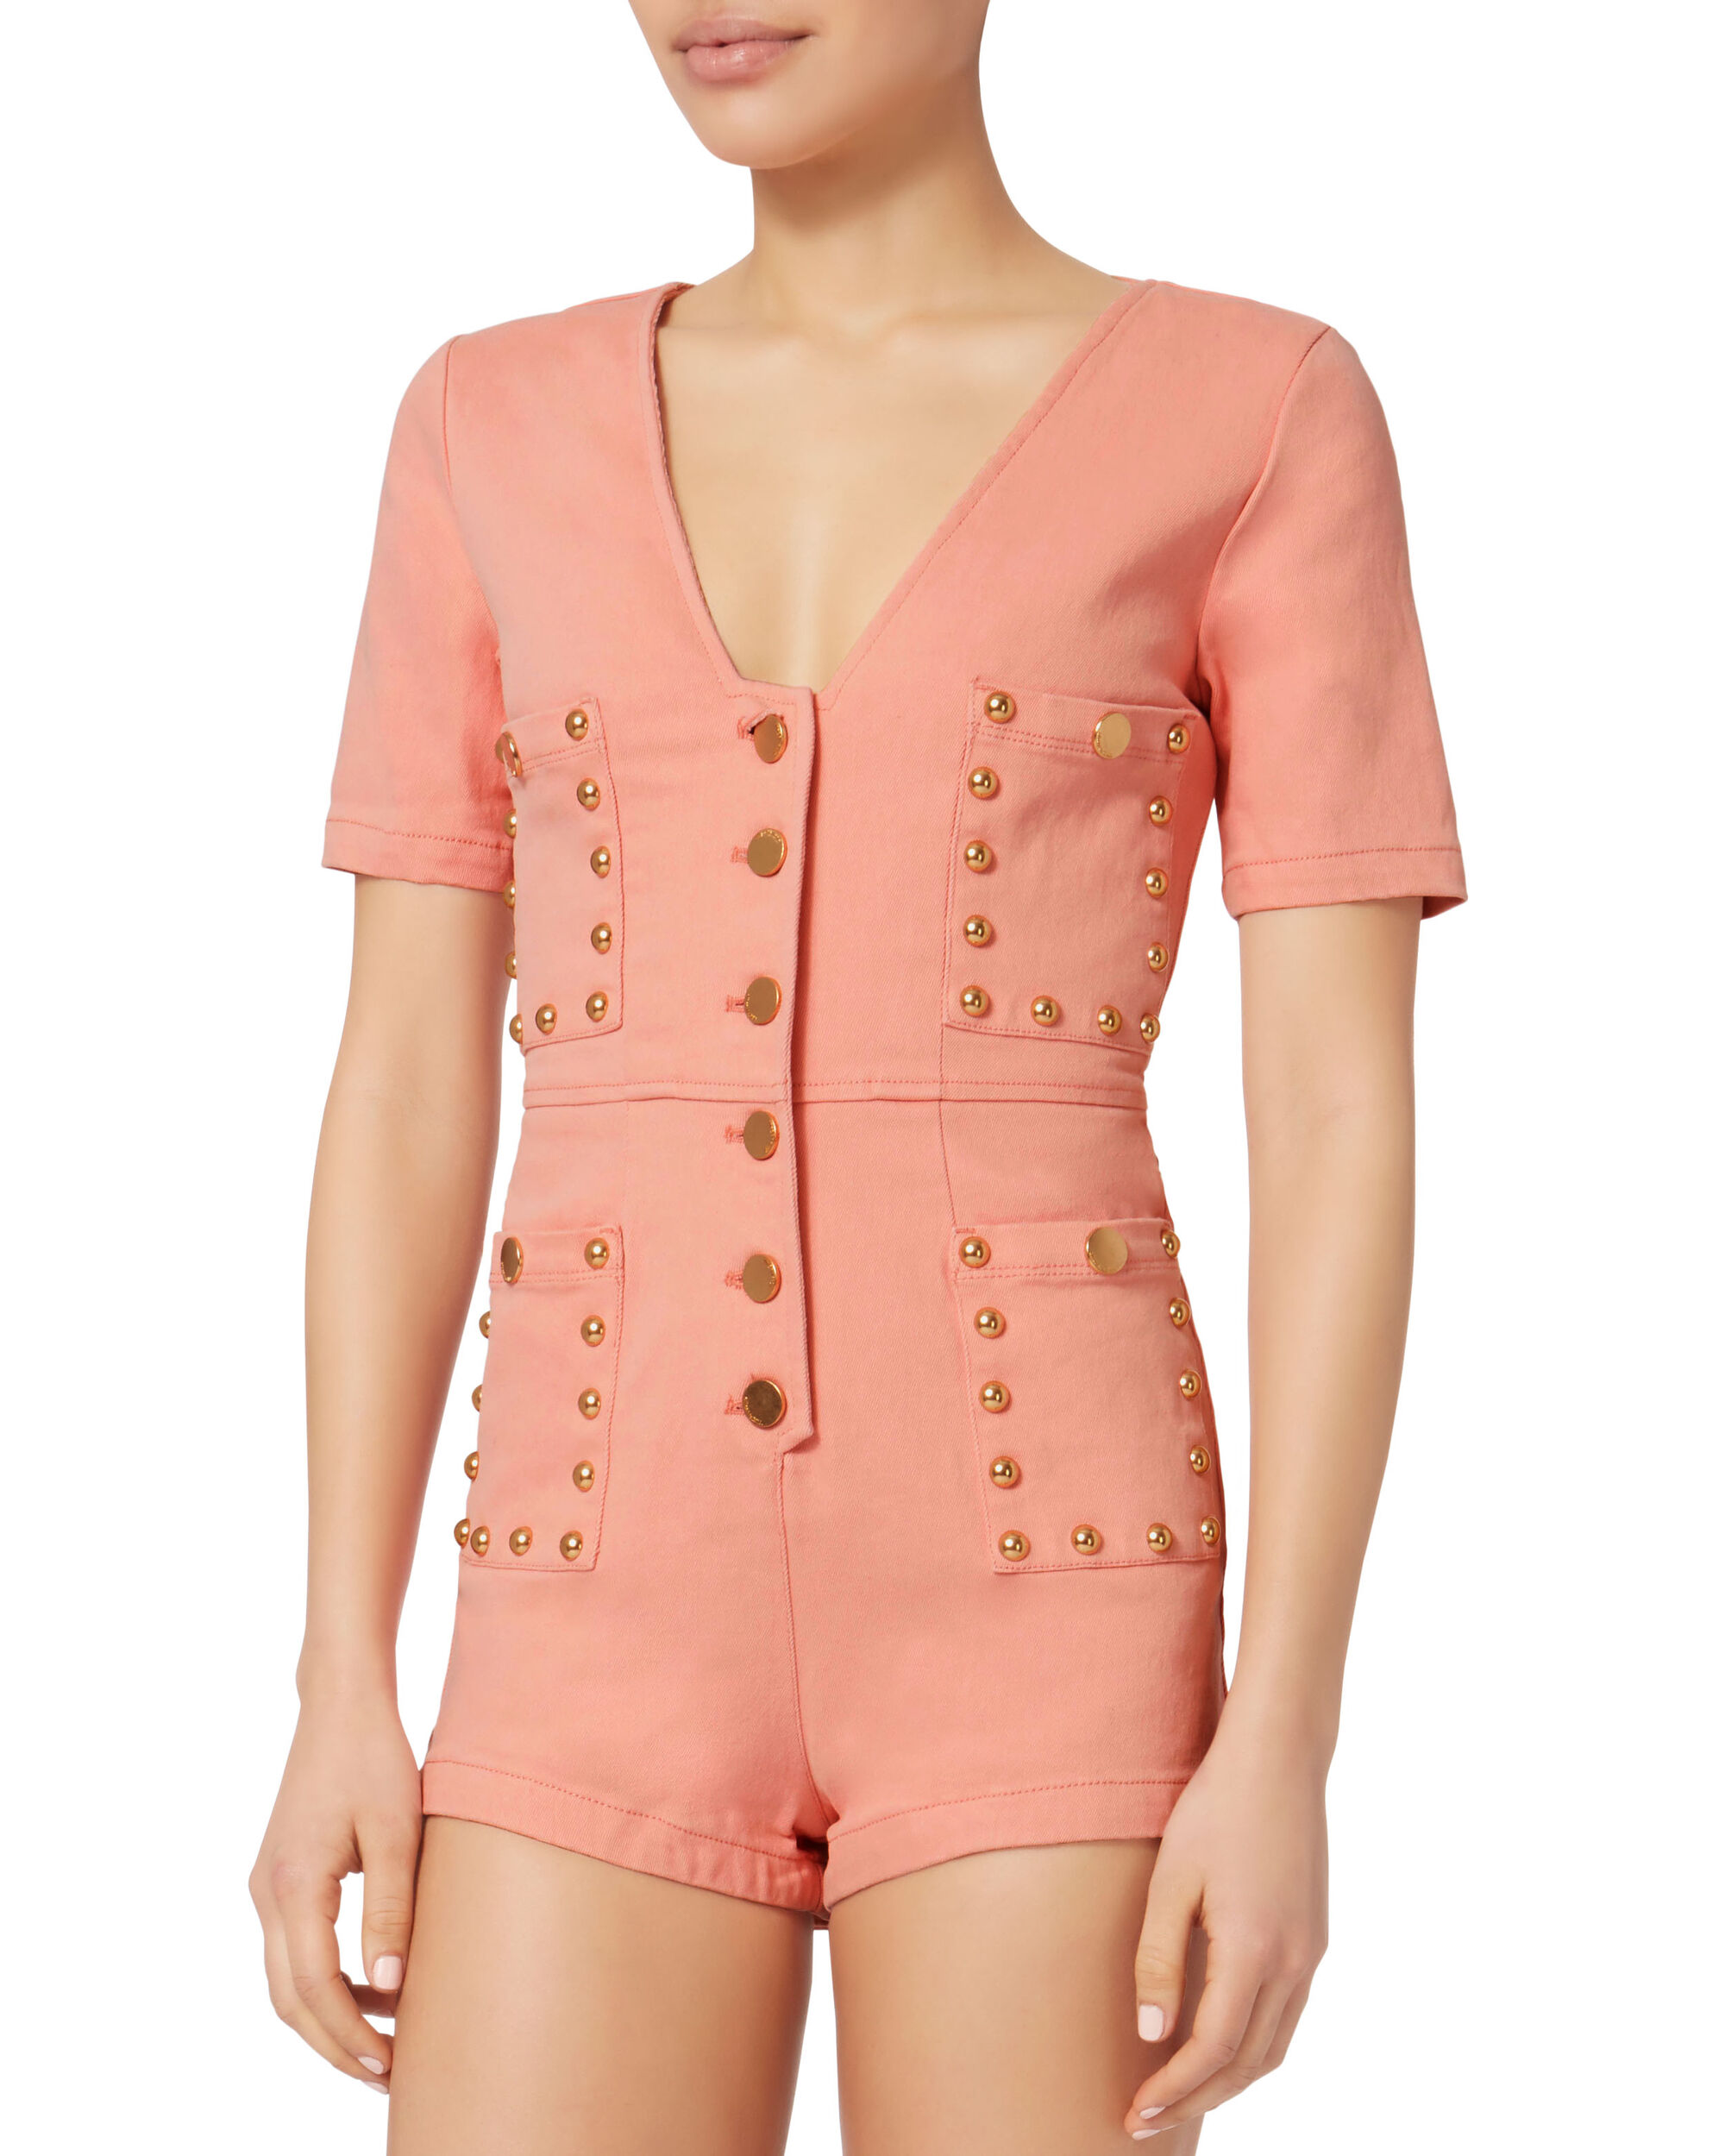 All Day All Night Playsuit, PINK, hi-res